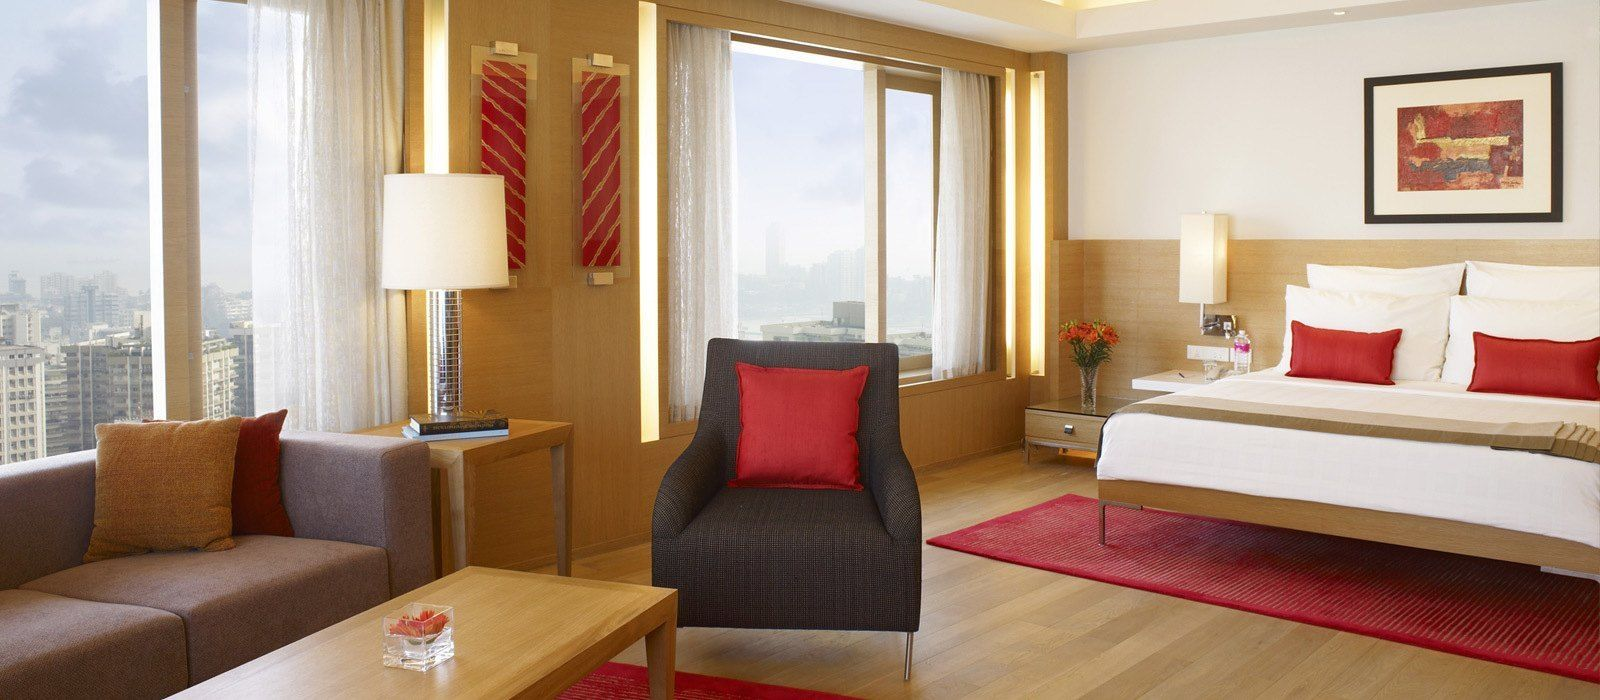 Hotel The Trident Nariman Point Central & West India